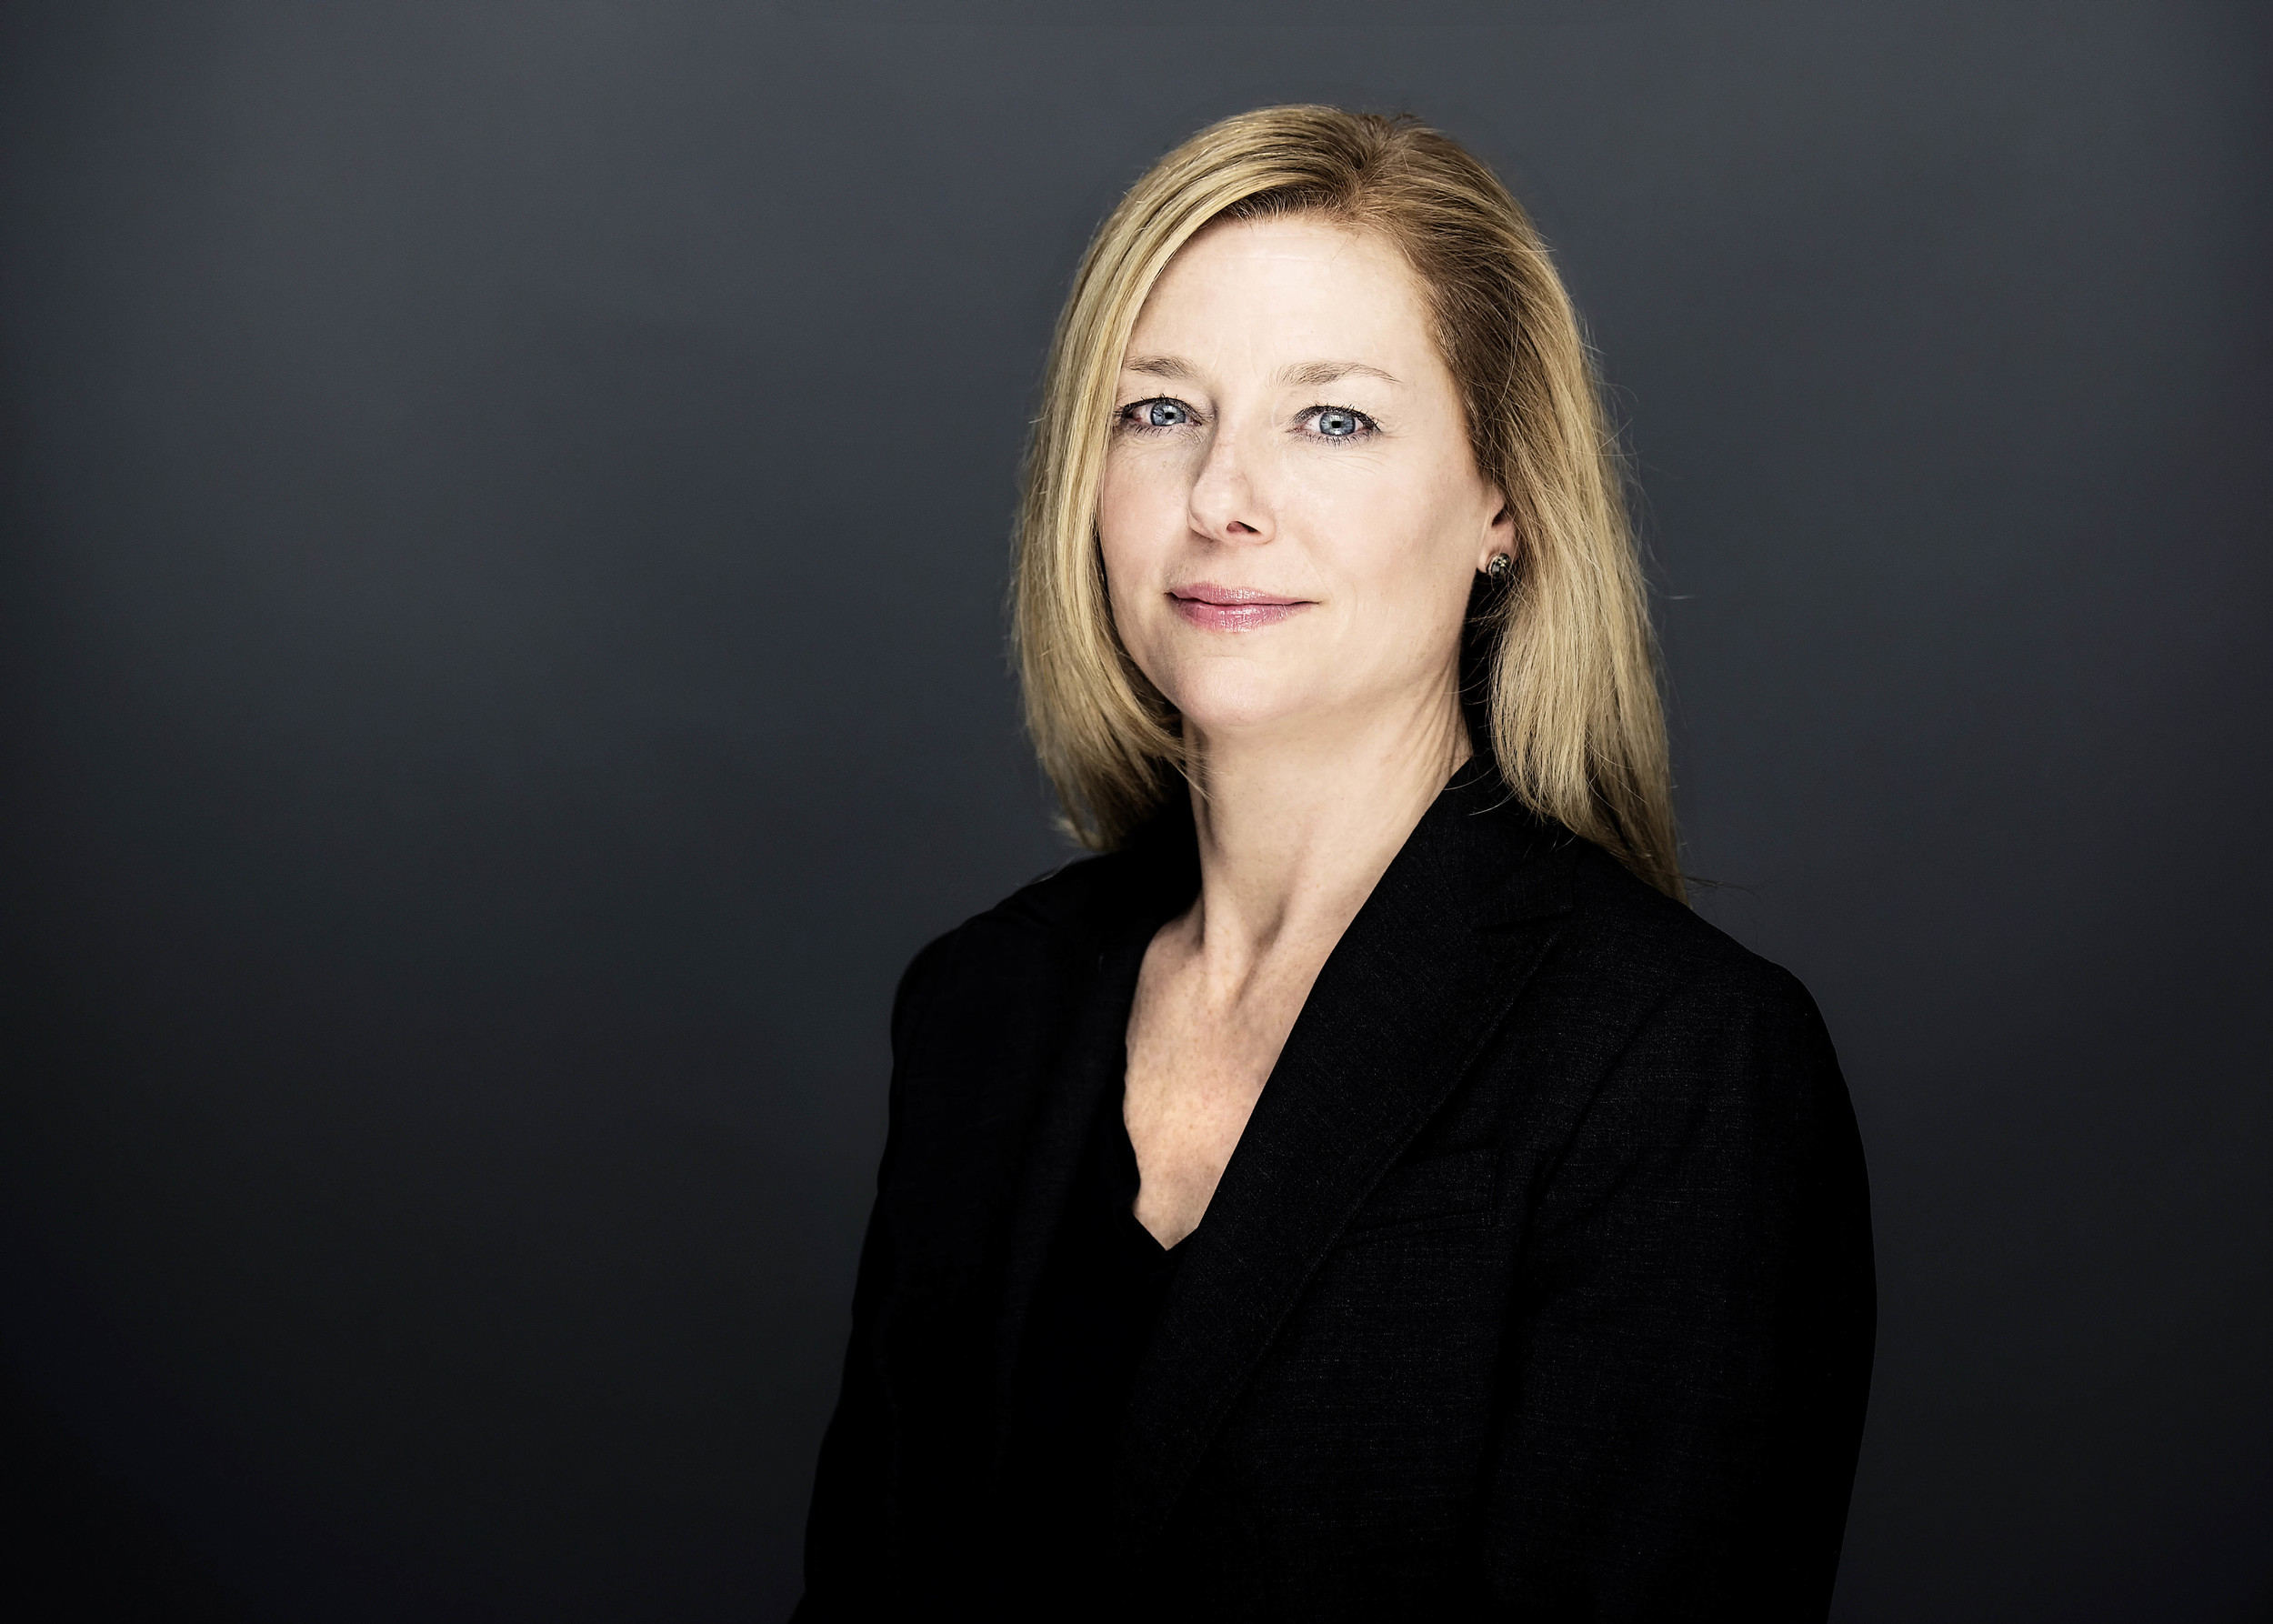 Kristen Neller Verderame is the CEO and Founder of Pondera International.